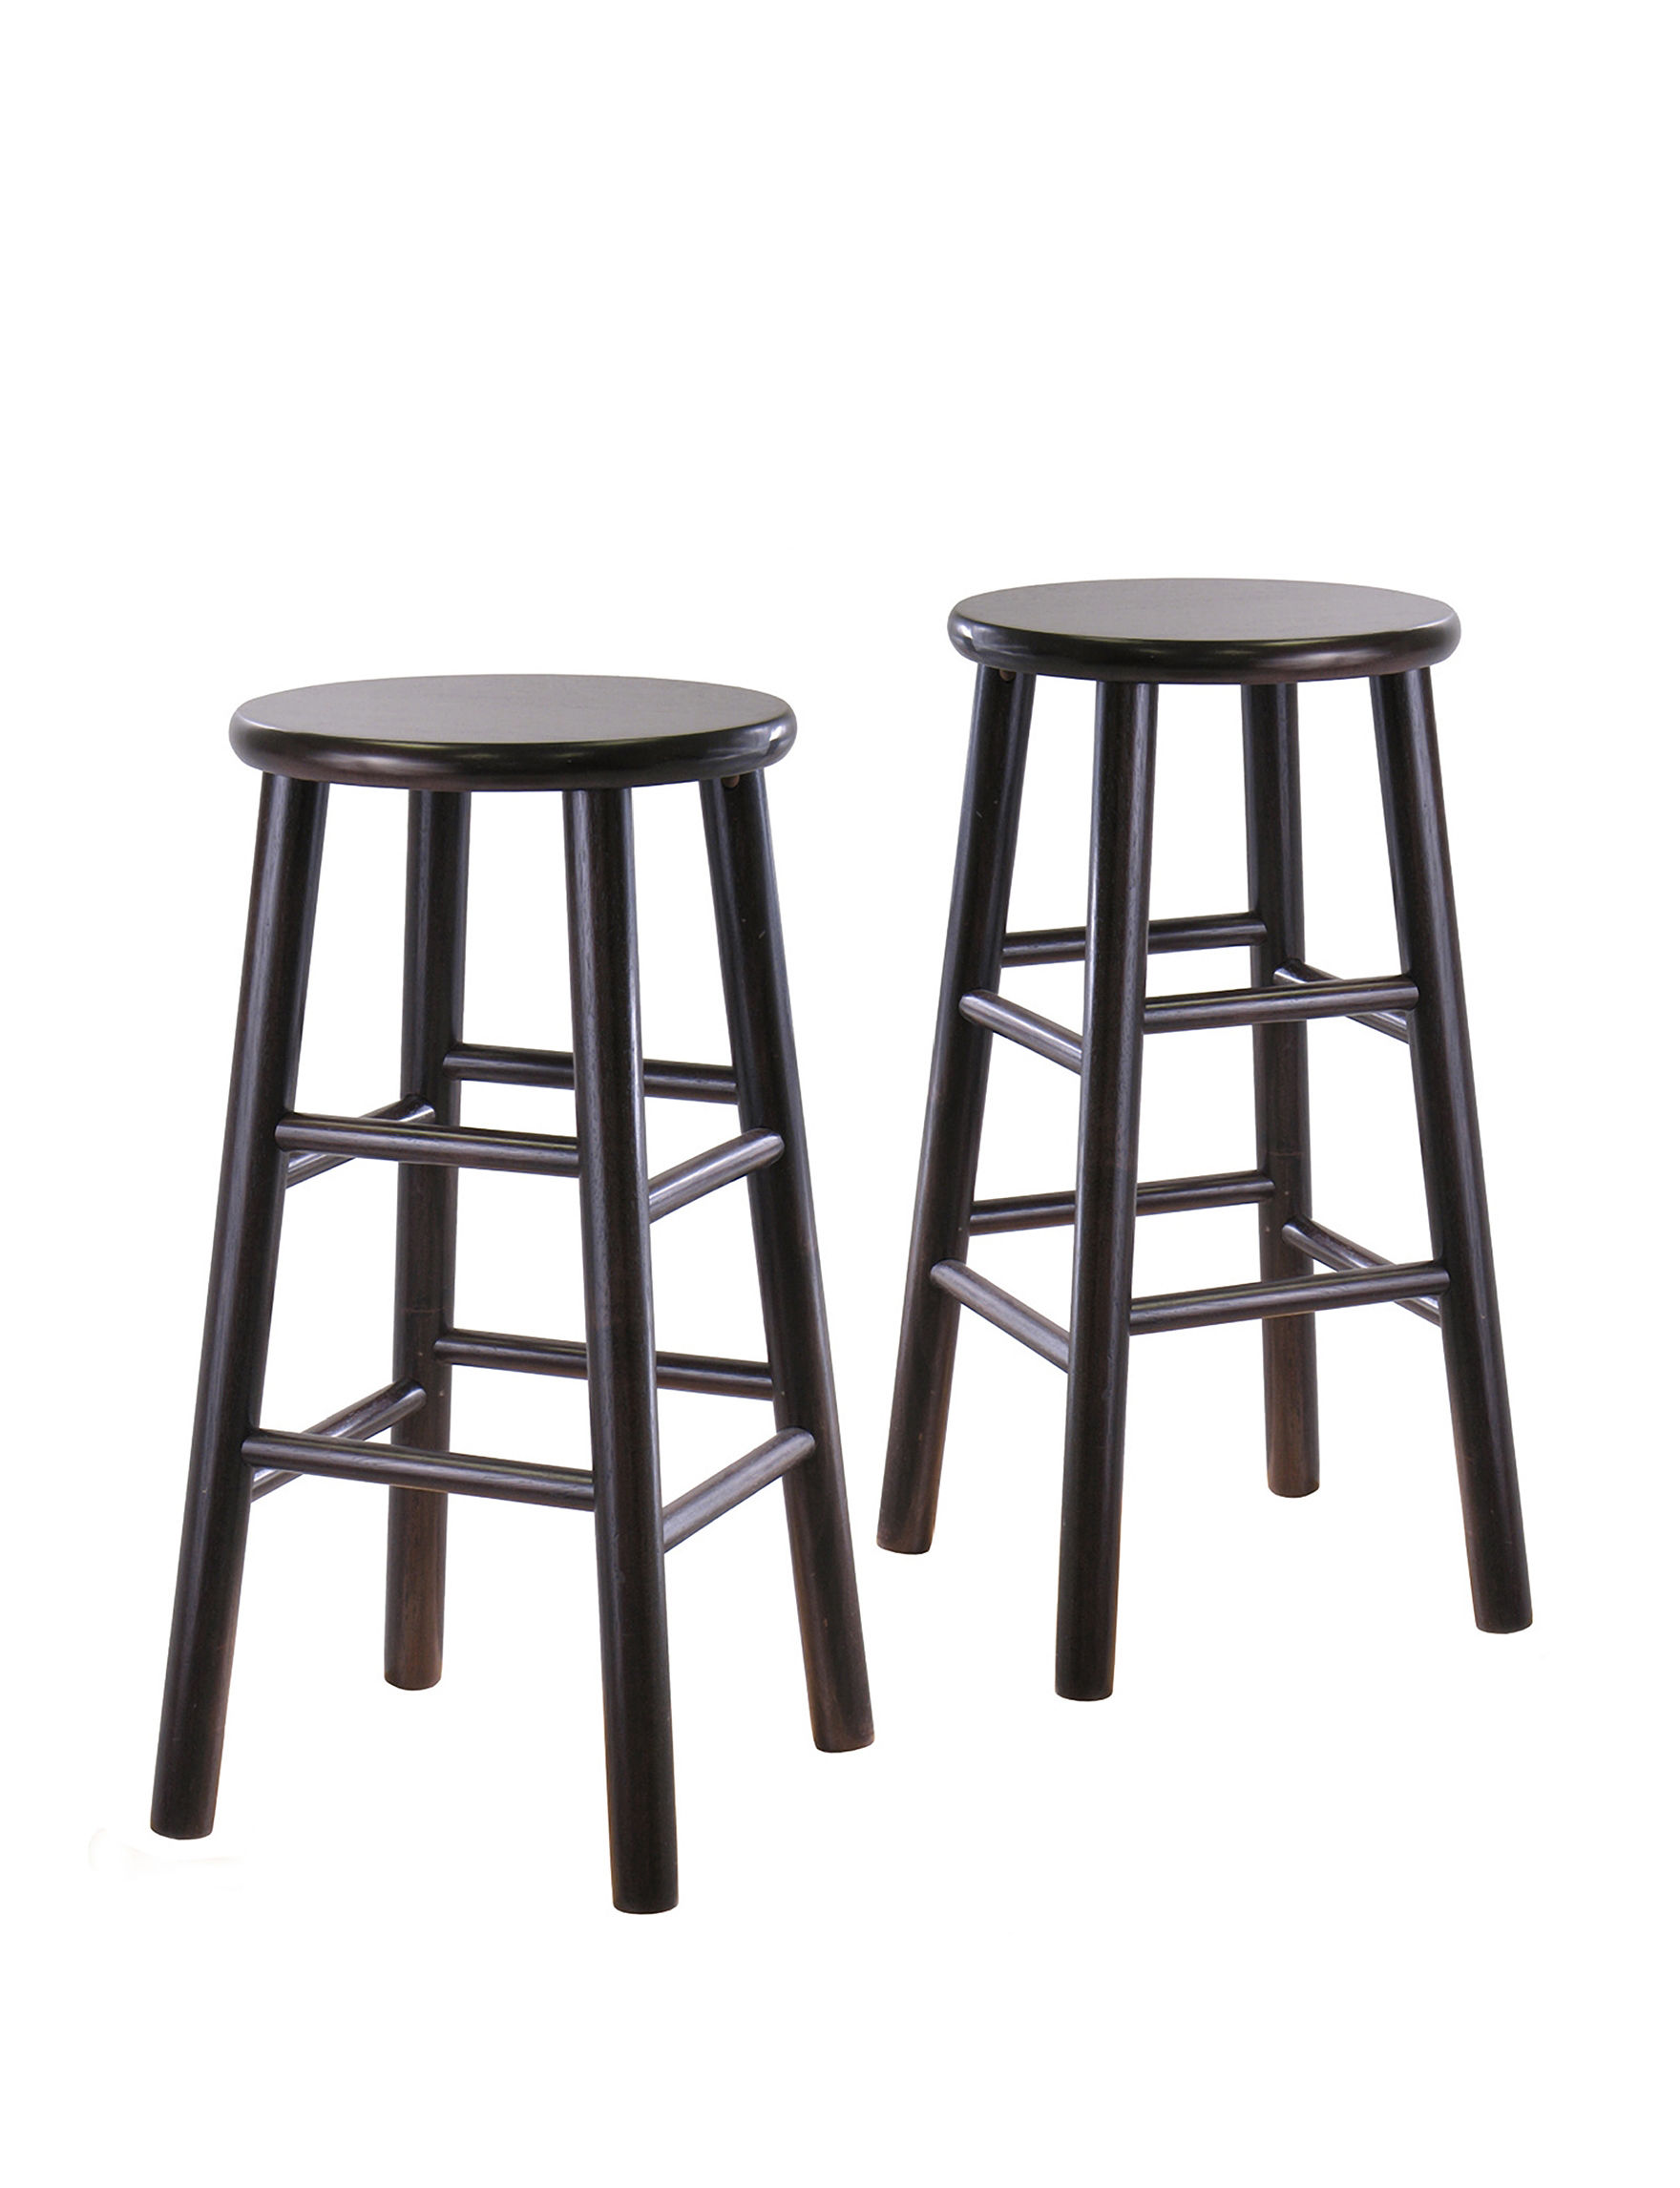 Winsome Chocolate Bar & Kitchen Stools Kitchen & Dining Furniture